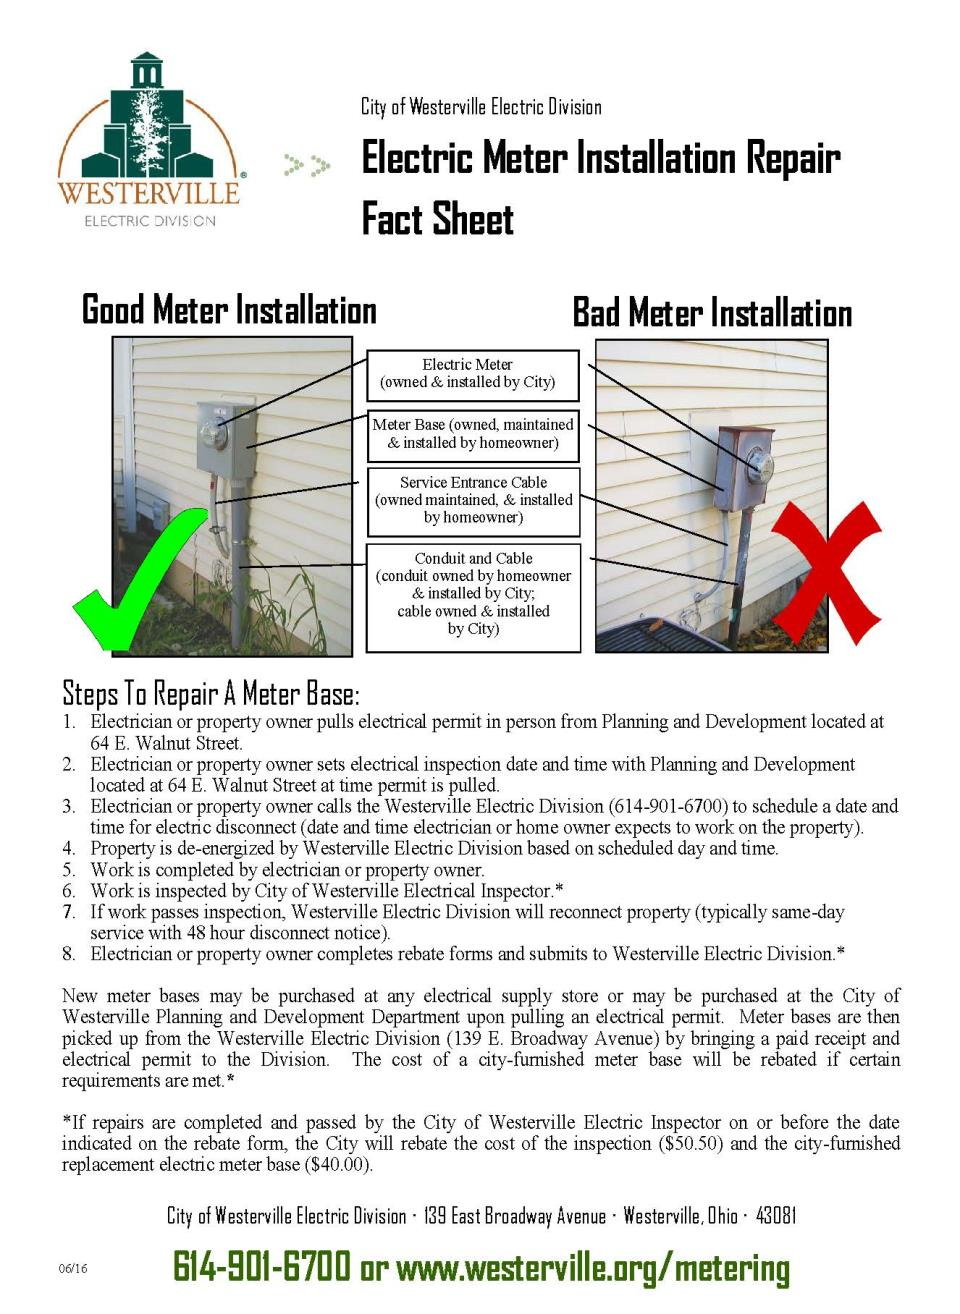 Meter Base Fact Sheet 2016_Page_1